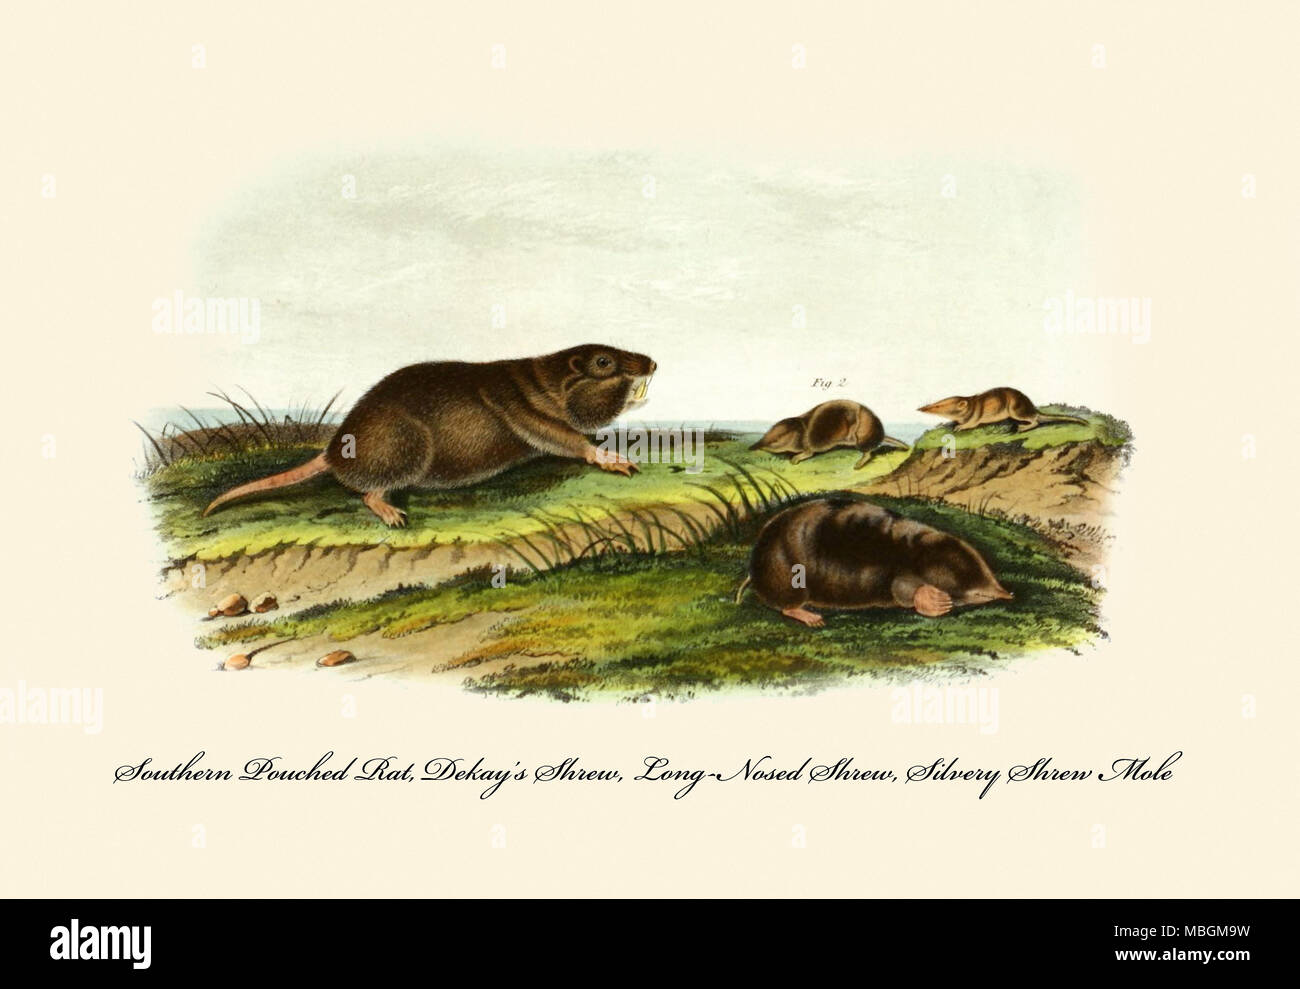 Southern Pouched Rat, Dekay's Shrew, Long-Nosed Shrew, Silvery Shrew Mole - Stock Image